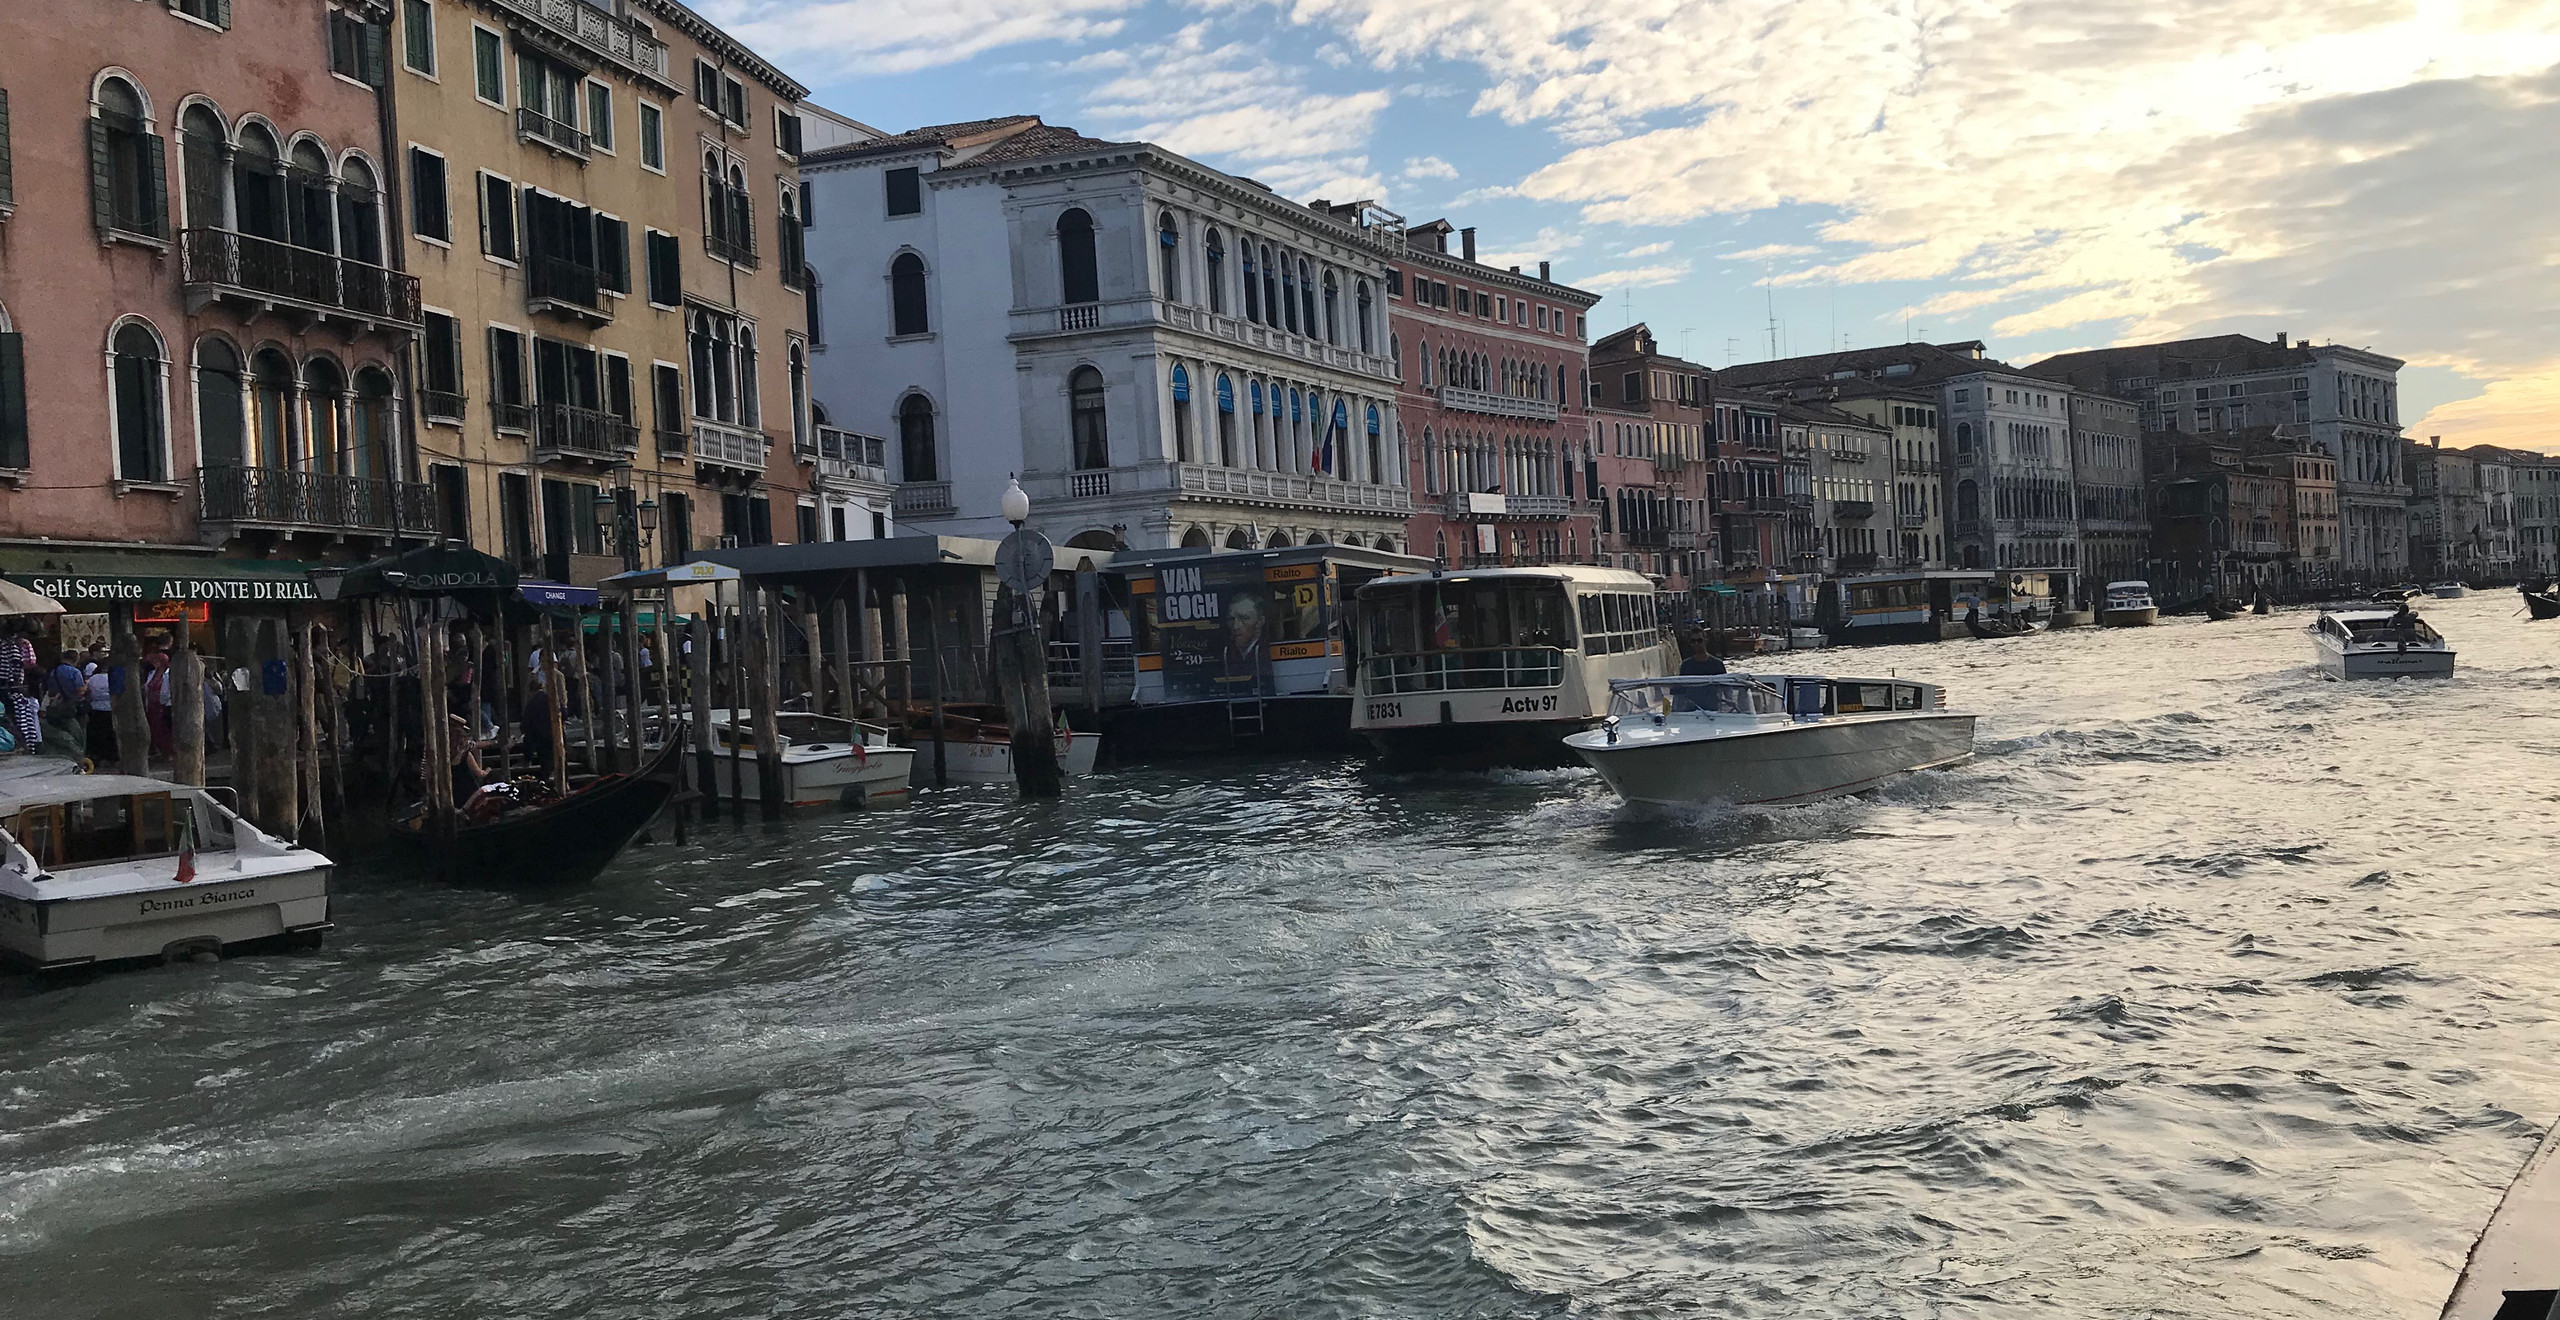 This was my first introduction to Venice. I felt like I was inside a Cezanne painting.